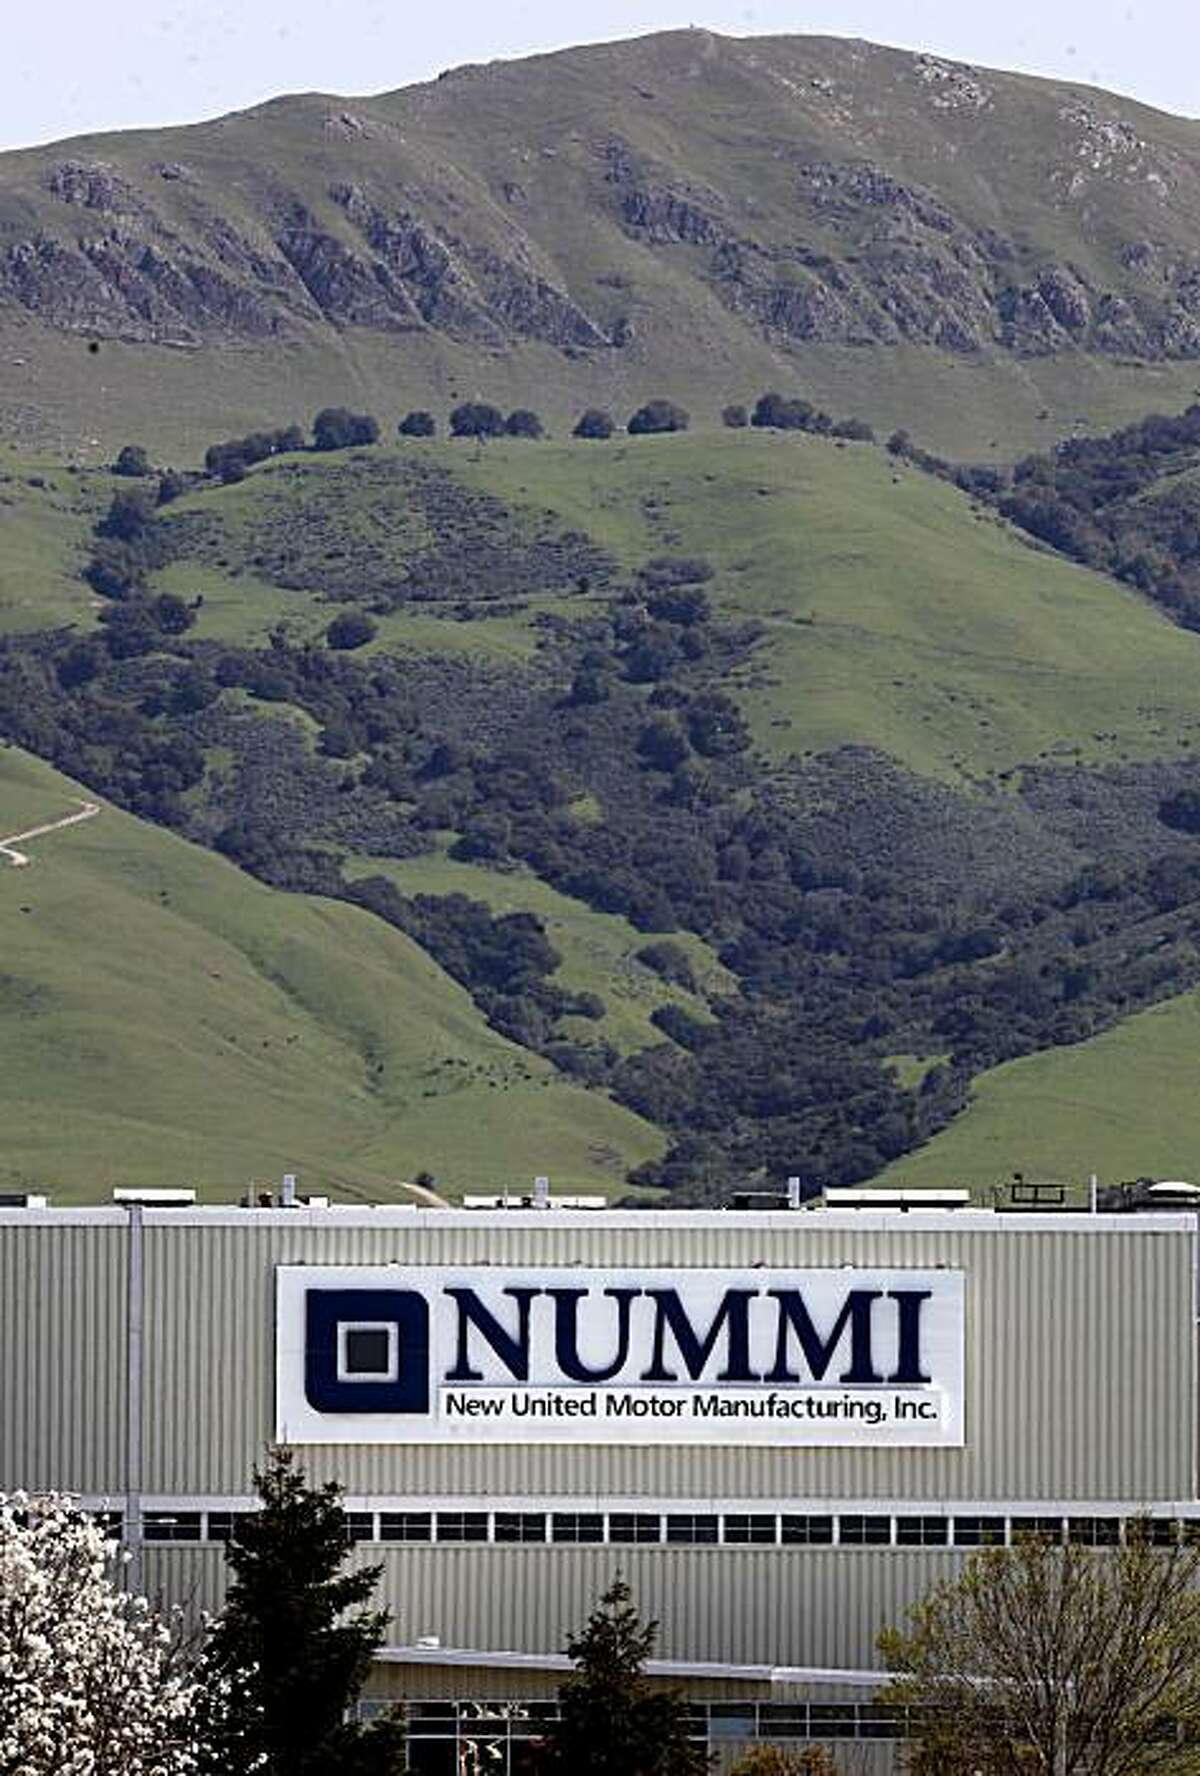 The New United Motor Manufacturing Incorporated plant, on Friday Mar. 26, 2010 in Fremont, Calif. The NUMMI plant is scheduled to cease operations and shut down on April 1.